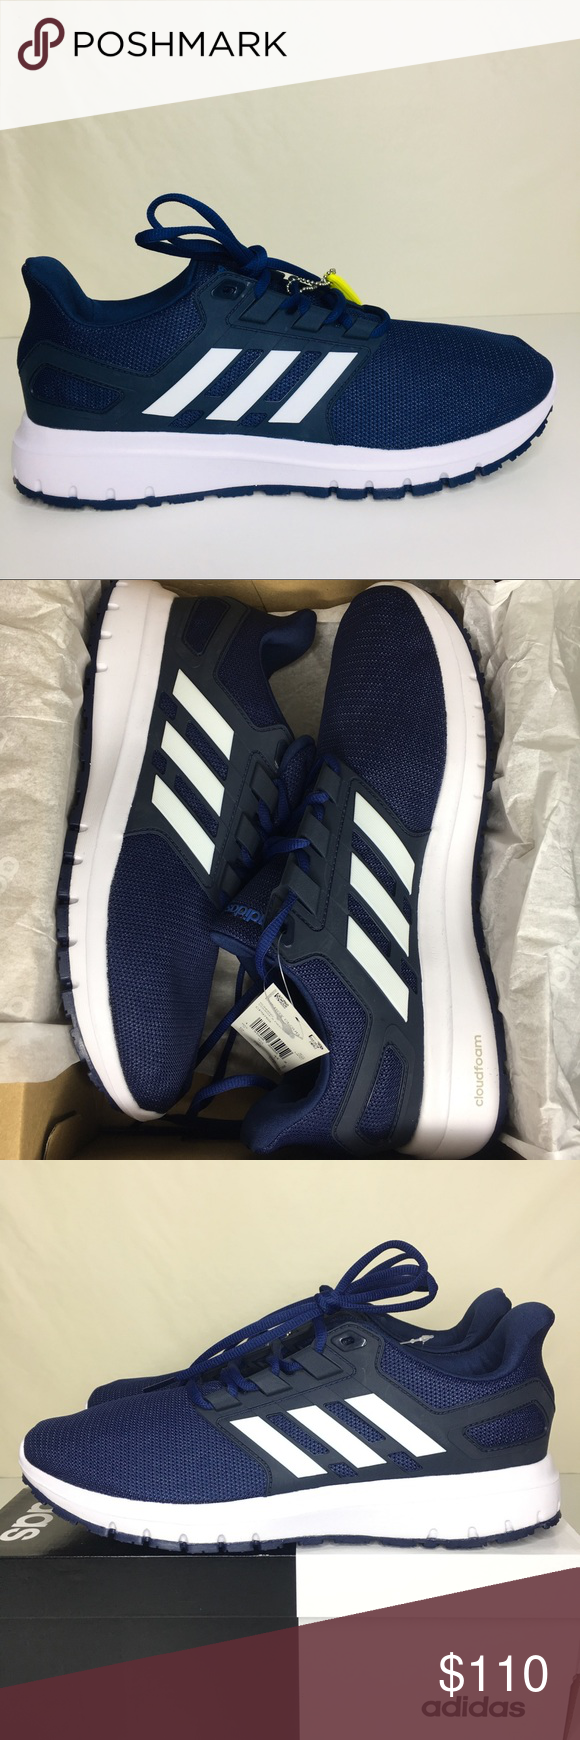 Adidas Energy Cloud 2 Running Shoes Size 10 Give Your Running Routine An Extra Boost With The Energy Cloud 2 Running S Adidas Blue Adidas Shoes Sneakers Adidas